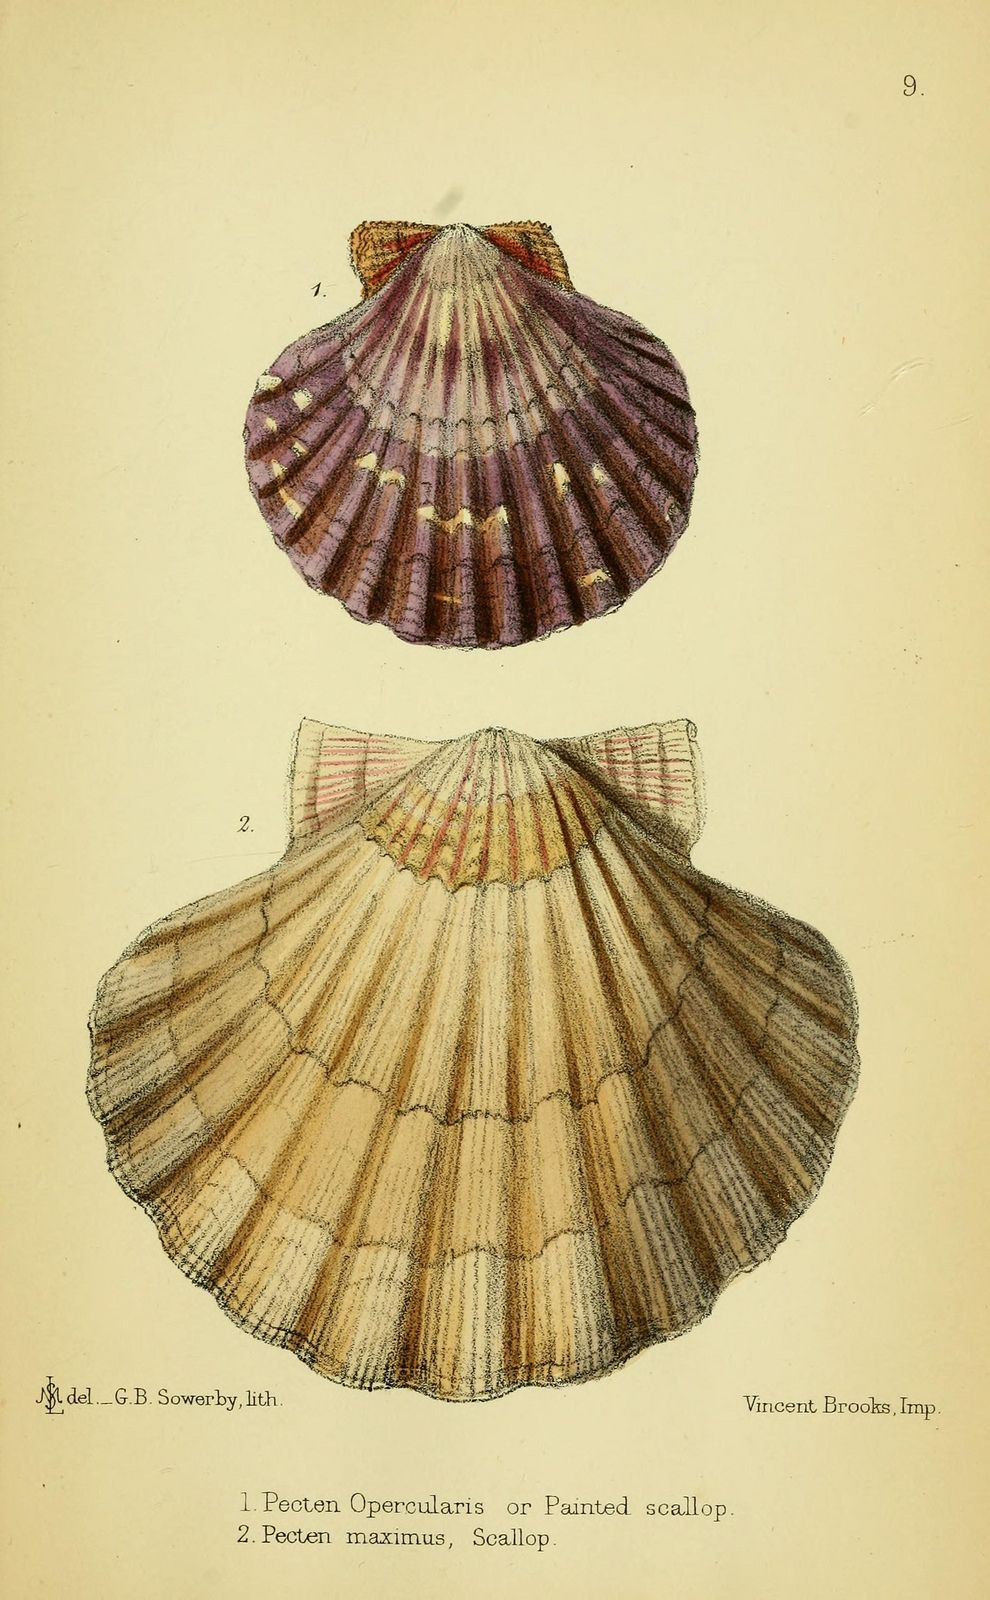 The edible mollusks of Great Britain and Ireland : with recipes for cooking them